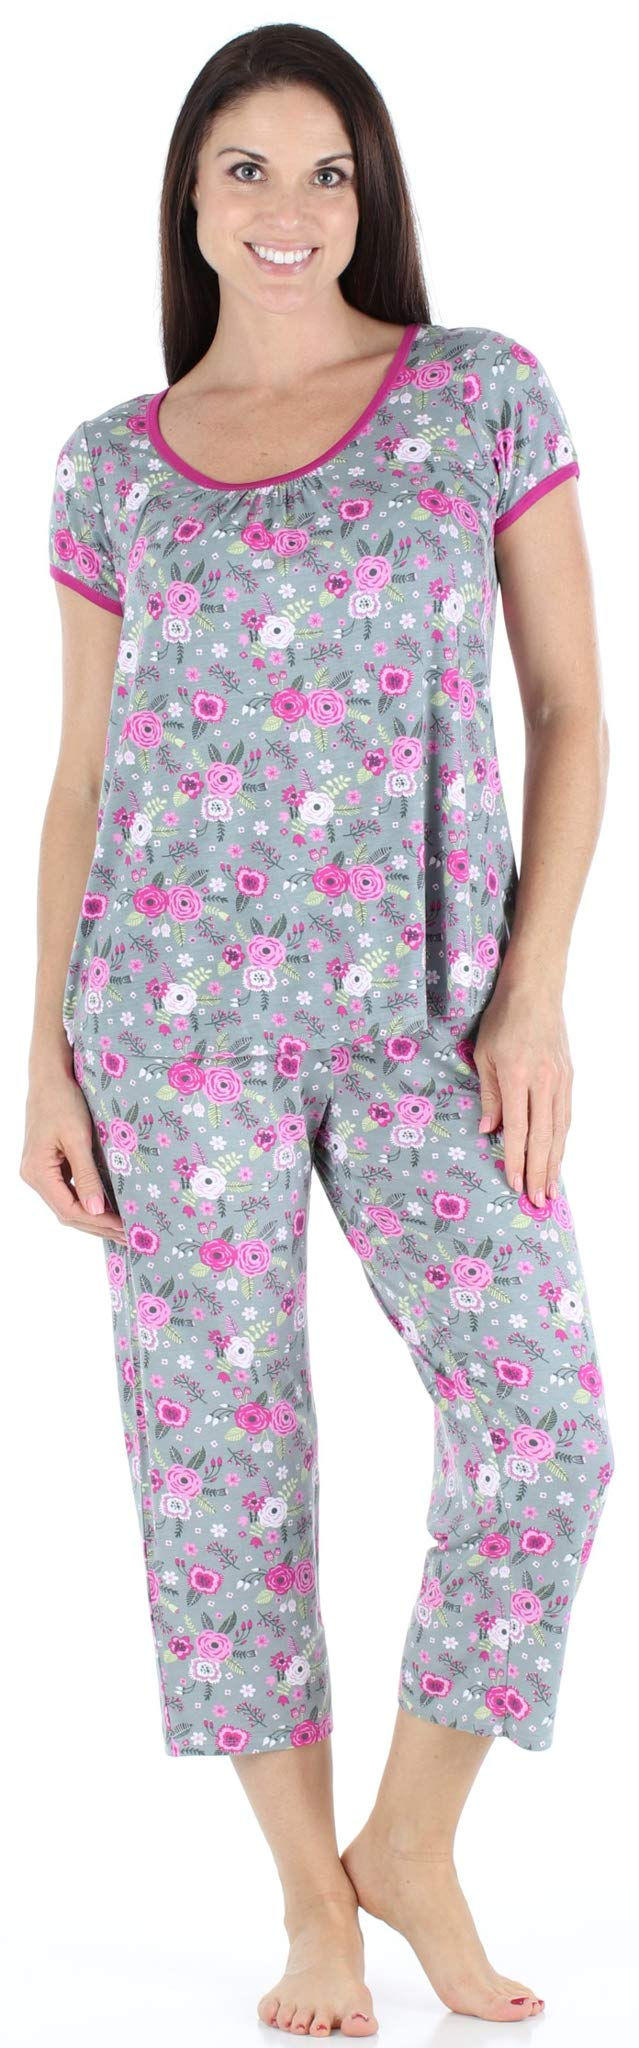 bSoft Women s Sleepwear Bamboo Jersey Short Sleeve Top and Capri Pajama Set  product image 48fe61454